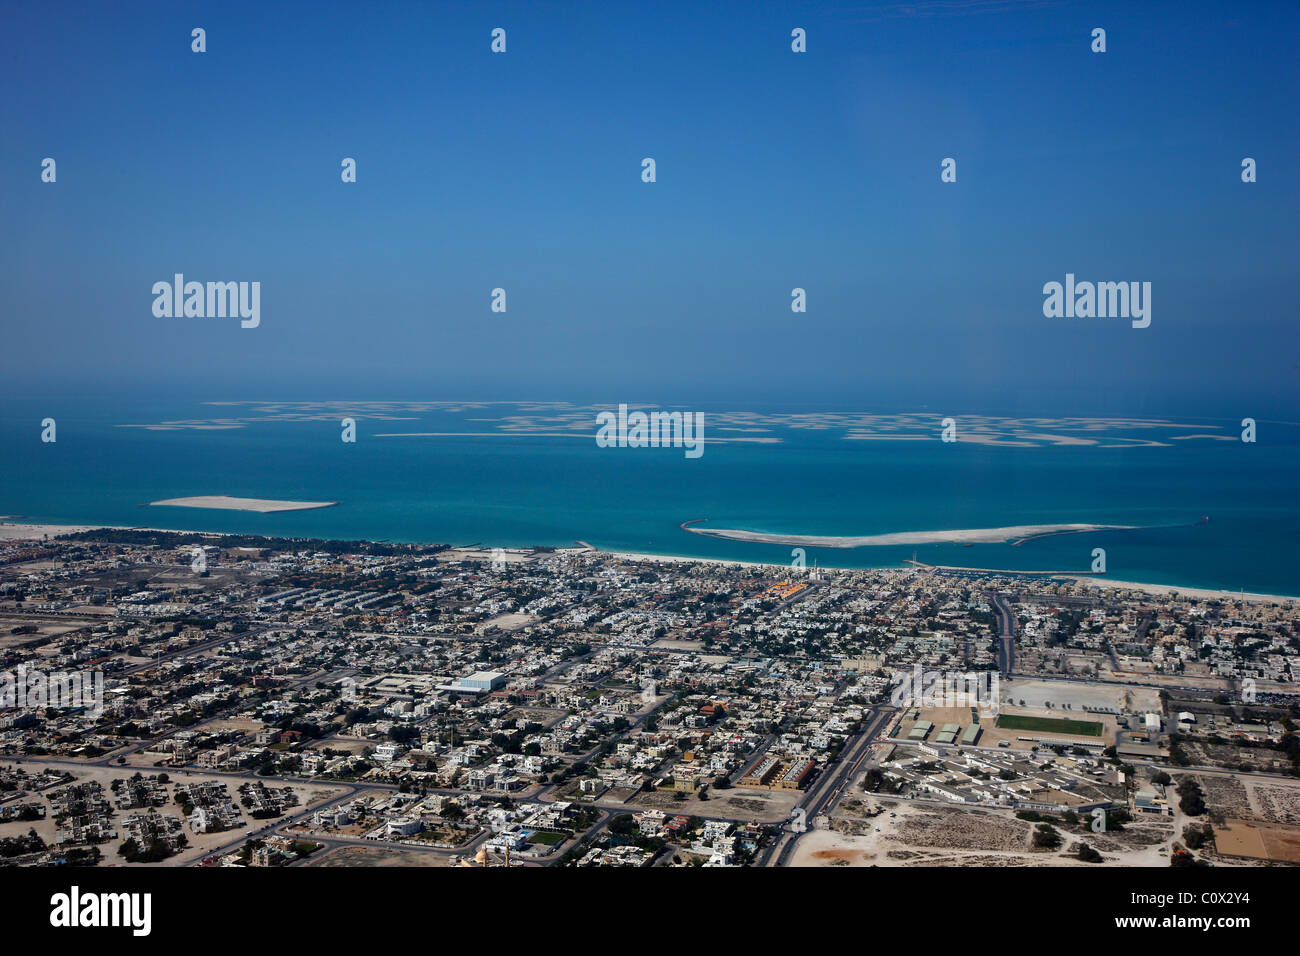 View of the world artificial islands in the shape of the world map view of the world artificial islands in the shape of the world map real estate project in dubai united arab emirates gumiabroncs Image collections